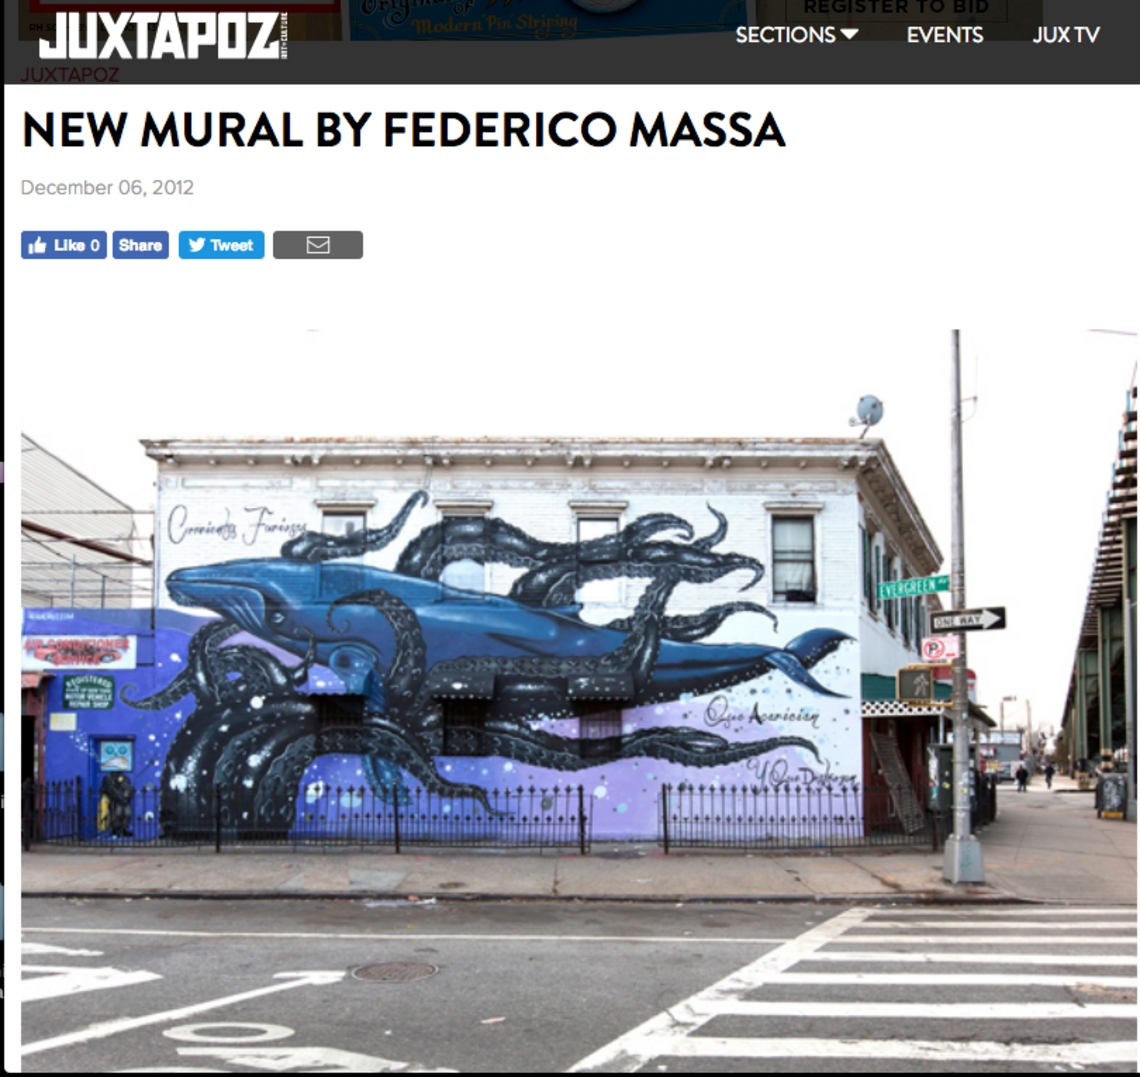 JUXTAPOZ - NEW MURAL BY FEDERICO MASSA